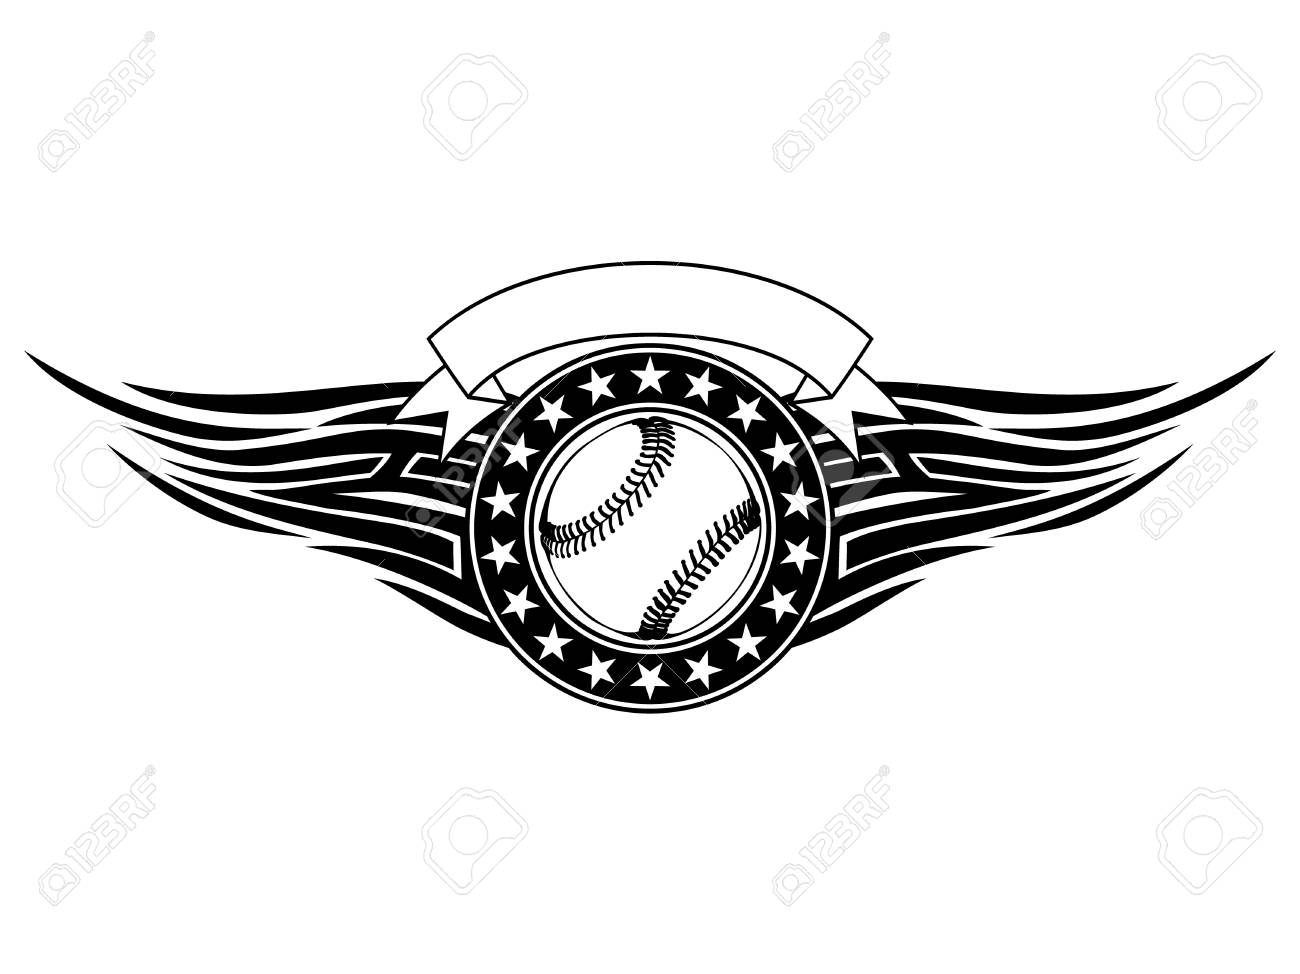 617585c3 Abstract vector illustration black and white baseball ball with tribal  wings. Design for tattoo or